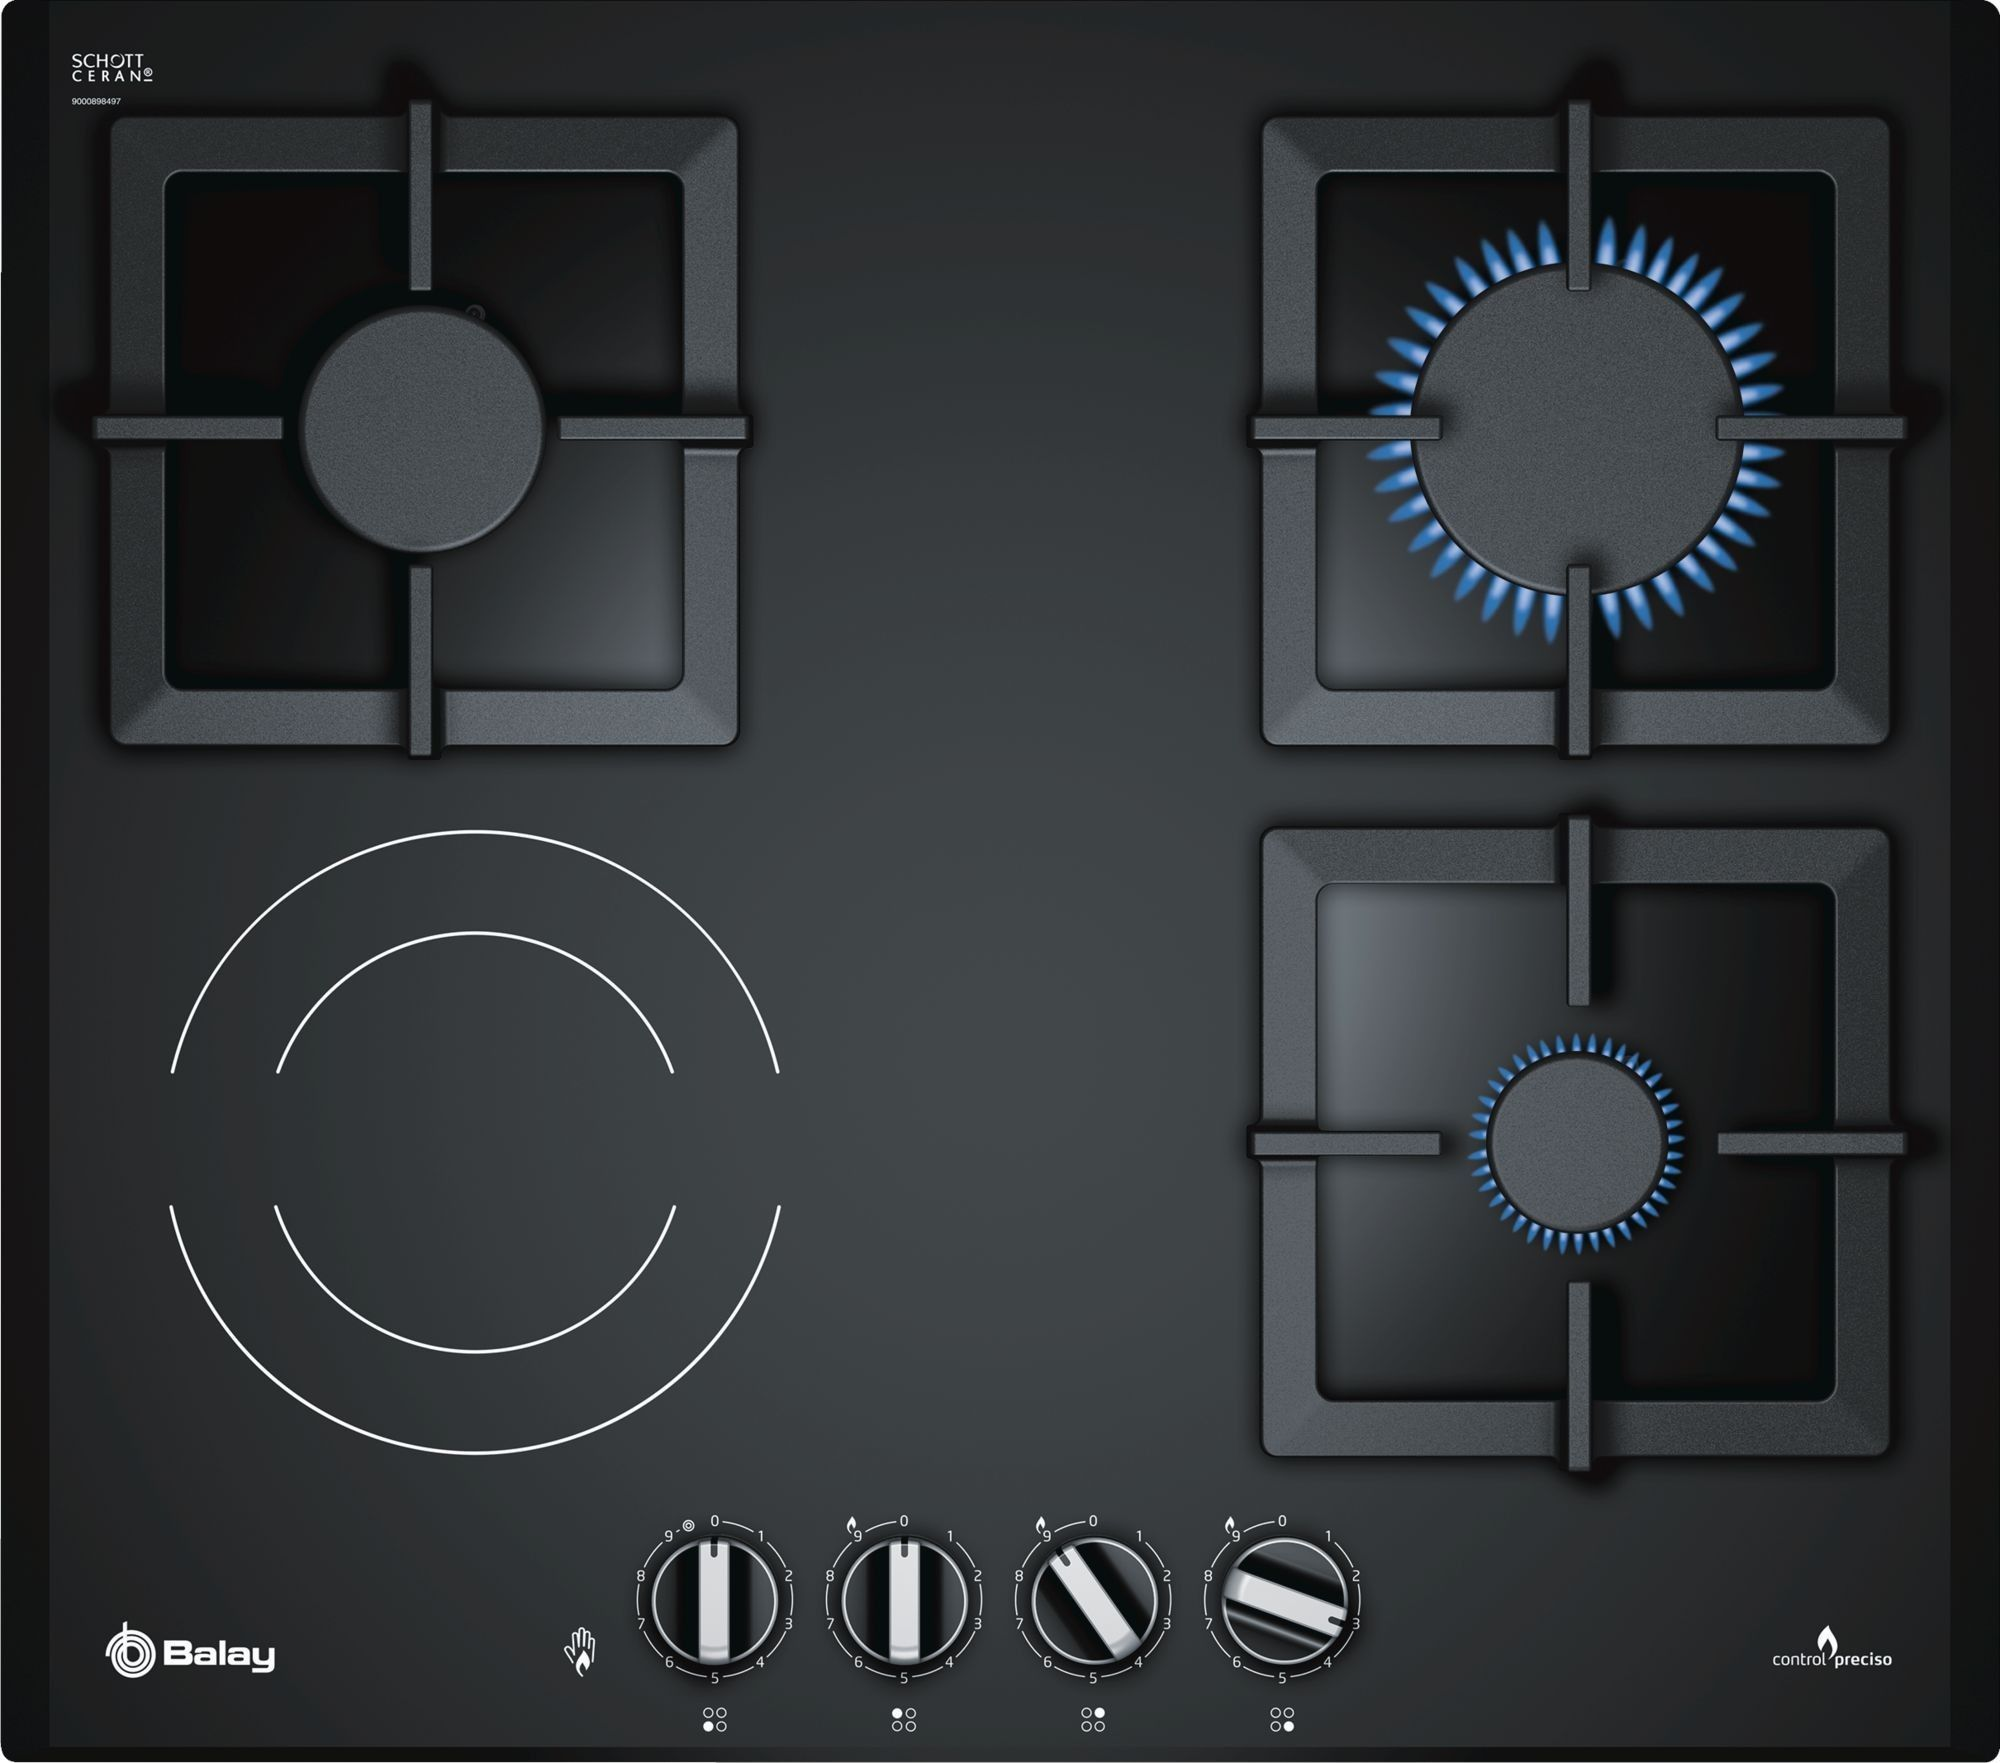 Buy Balay 3etg667hb Built In Combi Black Hob At Bestbuycyprus Com For 479 00 With Free Delivery Cool Things To Buy Hobs Integrated Cooker Hoods